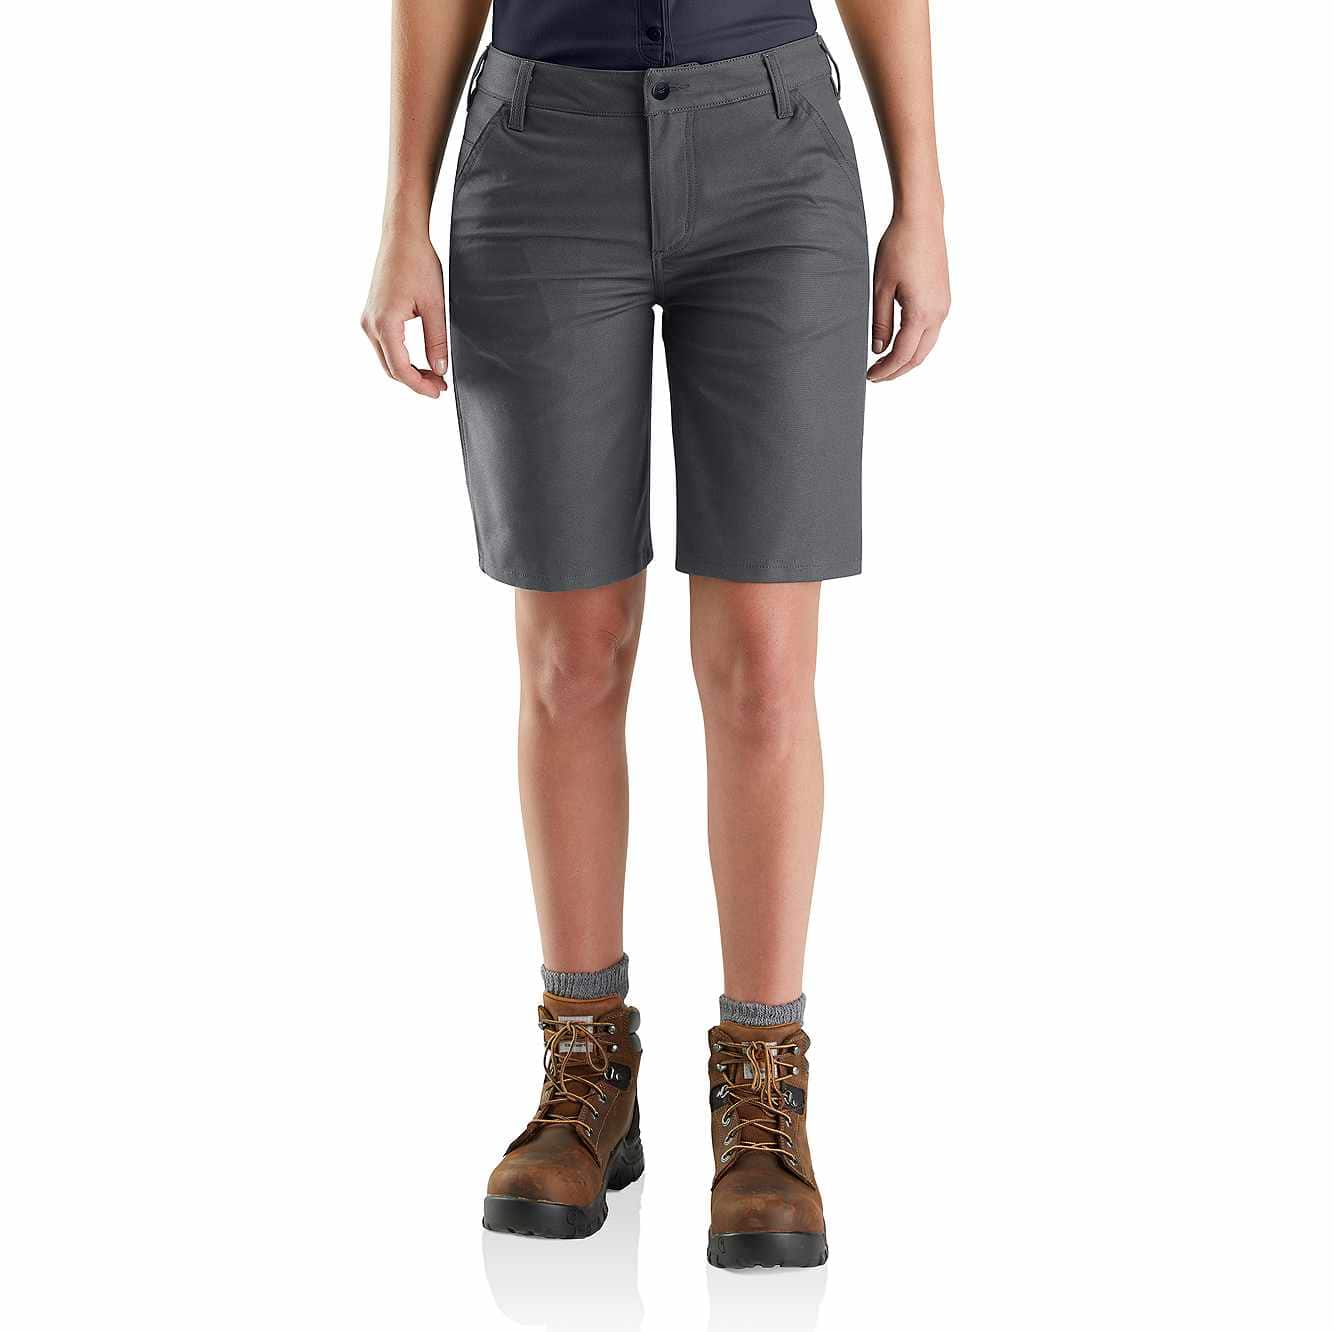 Picture of Rugged Professional™ Series Women's Original Fit Short in Shadow